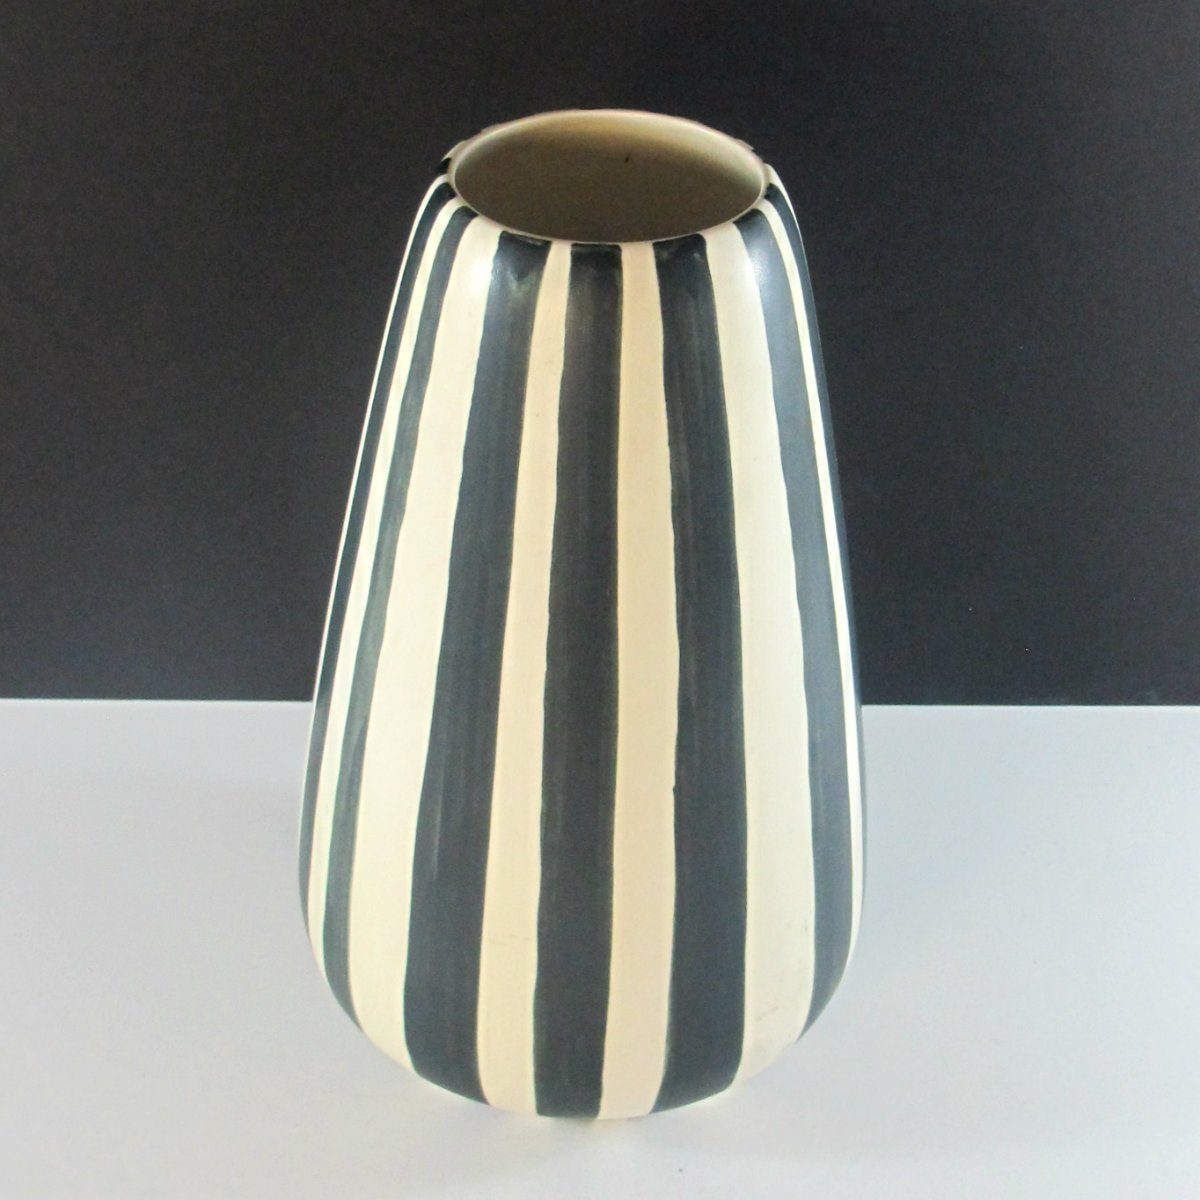 vase by maria kohler for villeroy et boch 1960s for sale at pamono. Black Bedroom Furniture Sets. Home Design Ideas